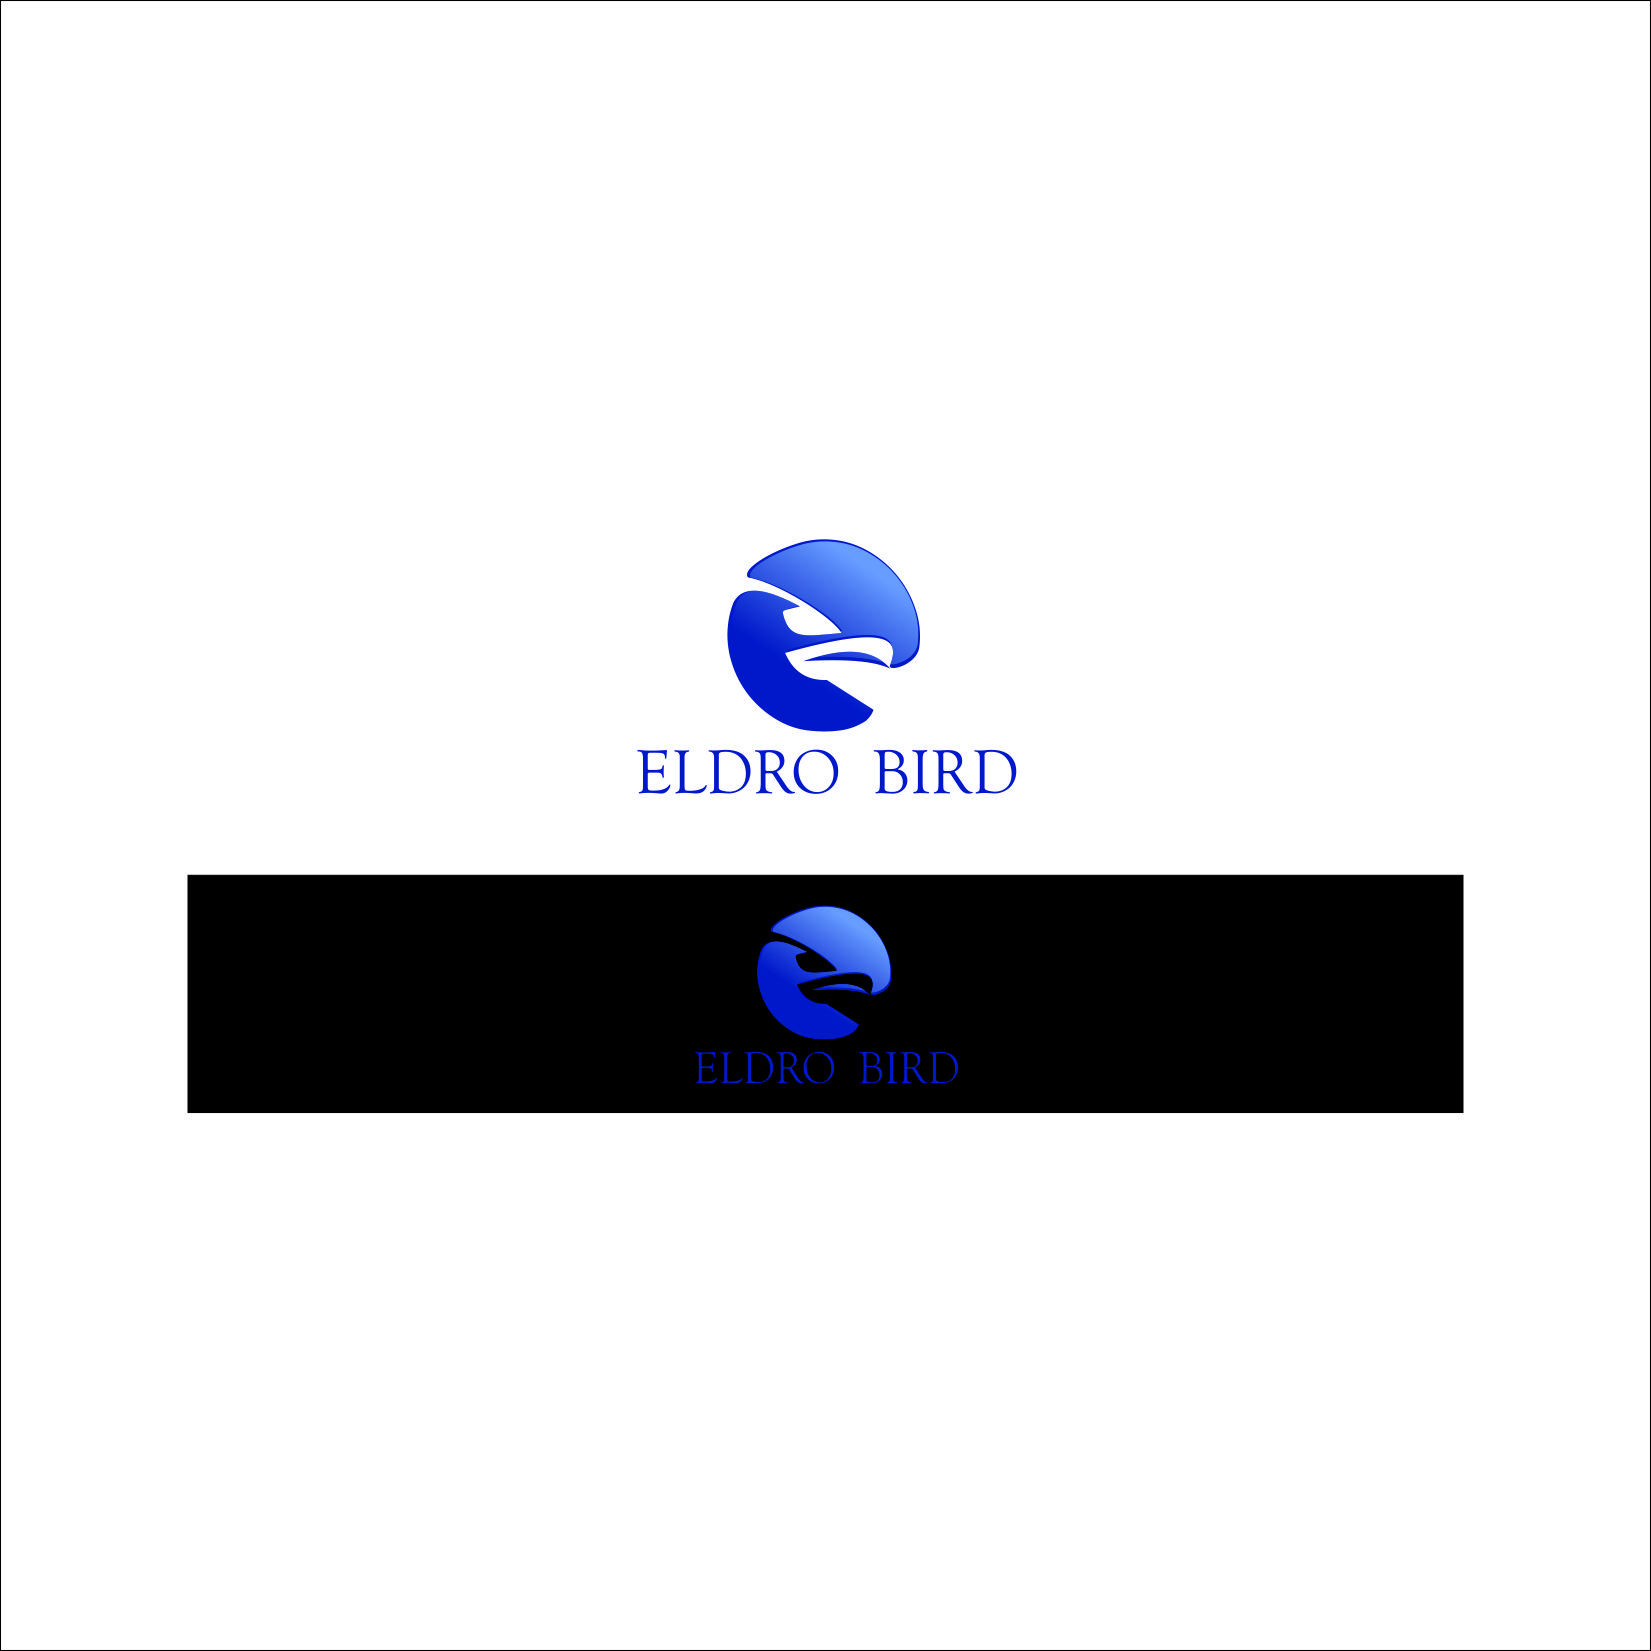 Logo Design by druuppy - Entry No. 15 in the Logo Design Contest New Logo Design for Bird car.